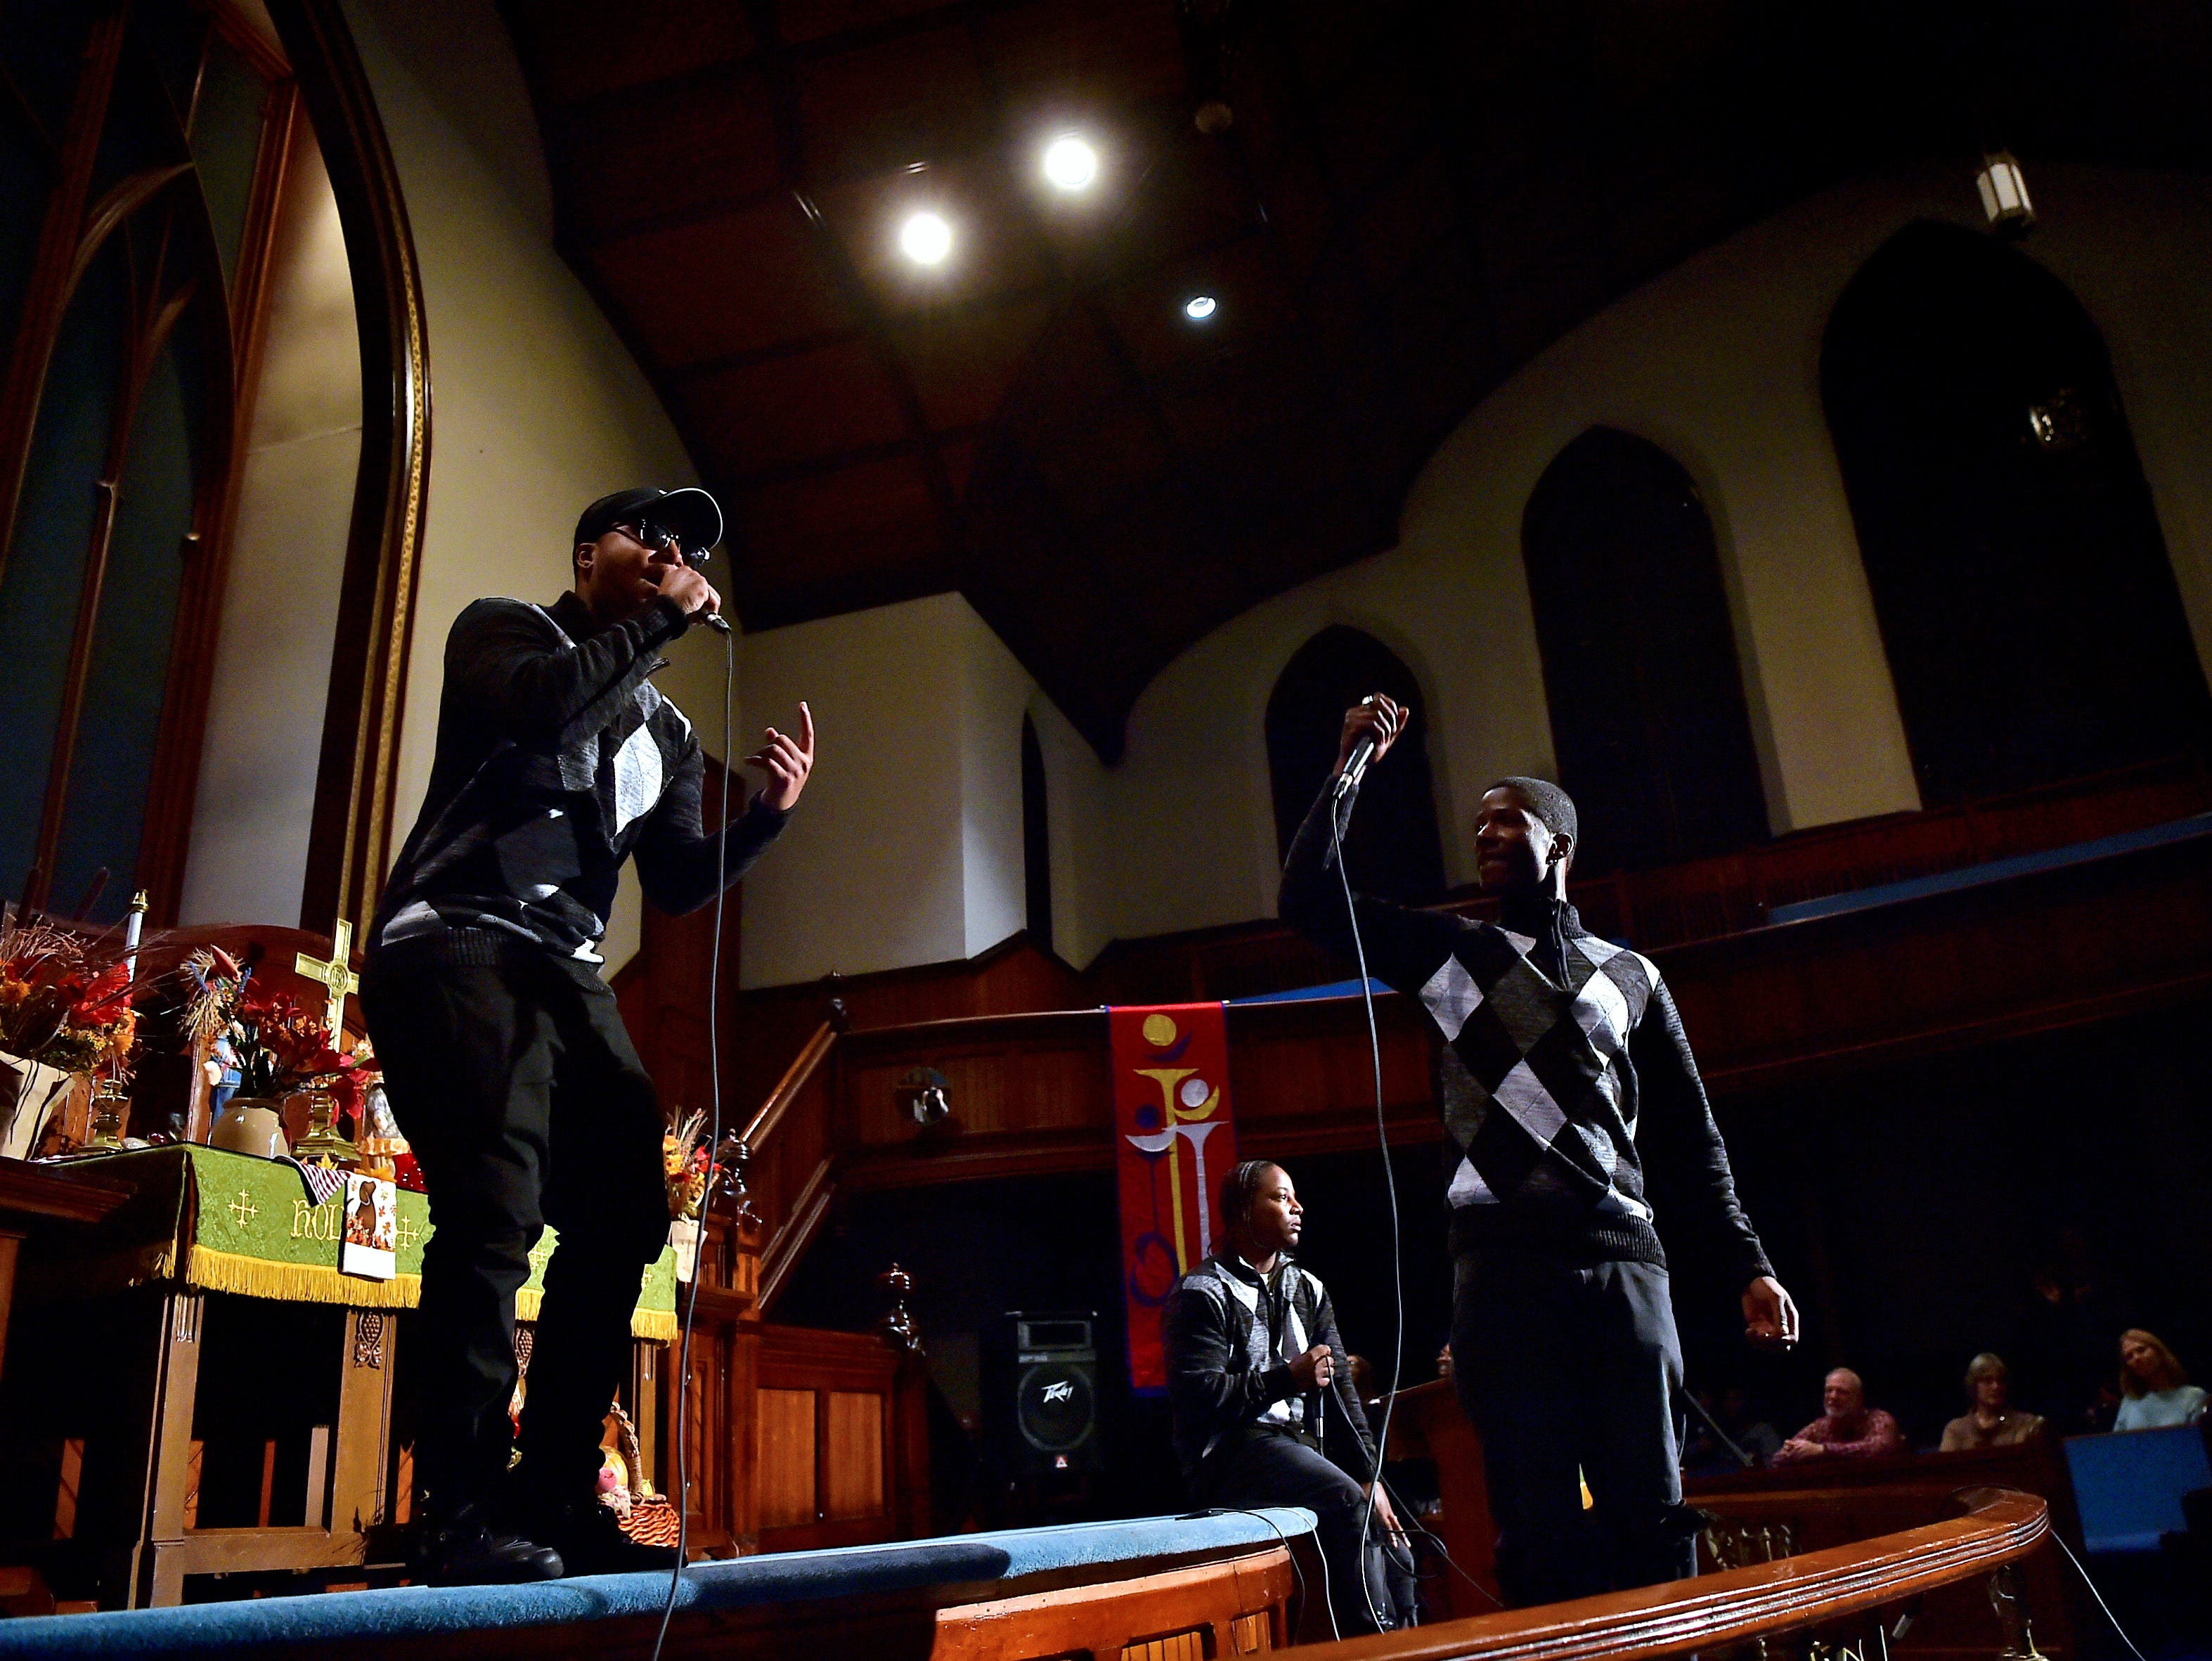 Brothers Over All perform during ONE ACCORD at Tabernacle United Methodist Church in Binghamton on October 26, 2018.